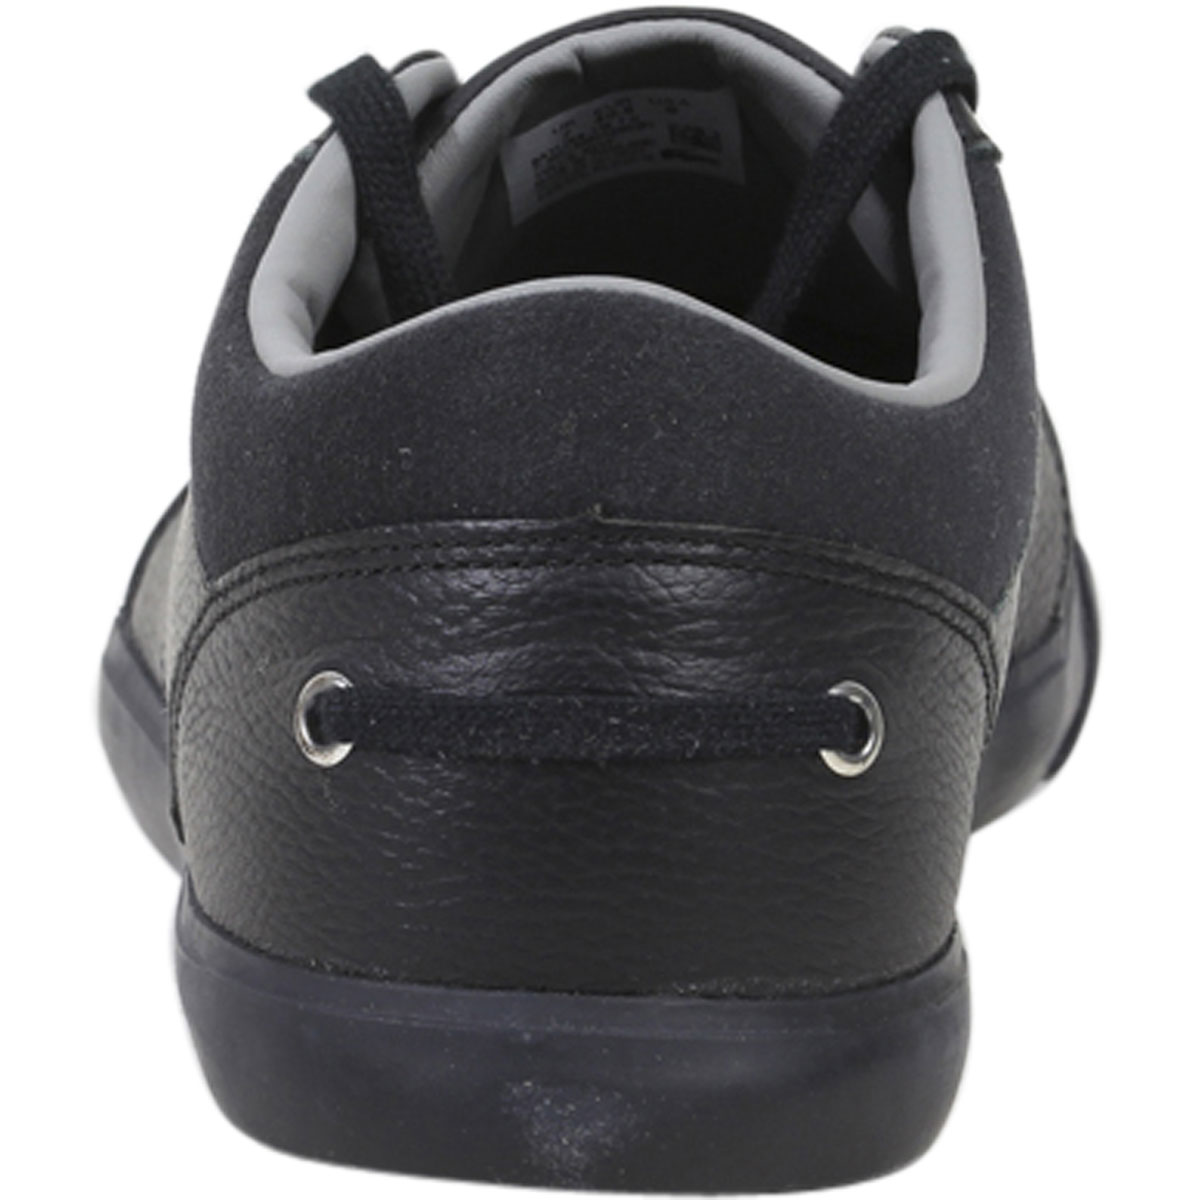 Lacoste-Men-039-s-Bayliss-118-Sneakers-Shoes thumbnail 11